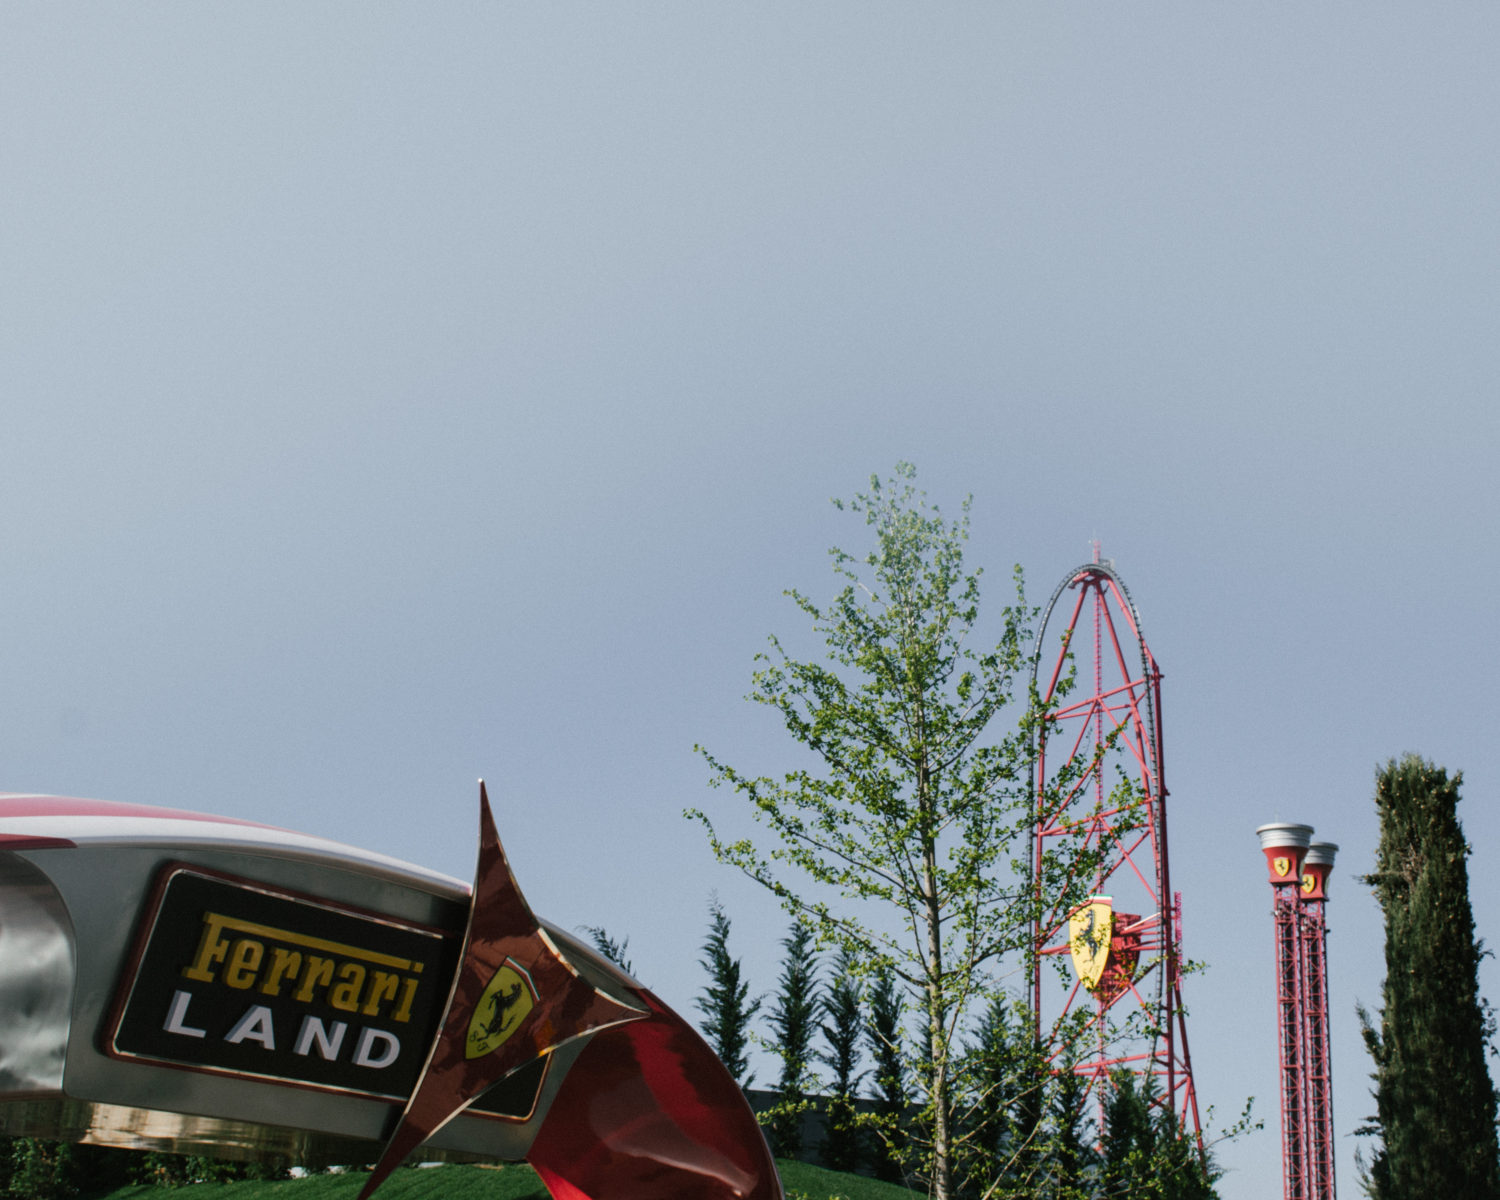 Red Force roller coaster at Ferrari Land